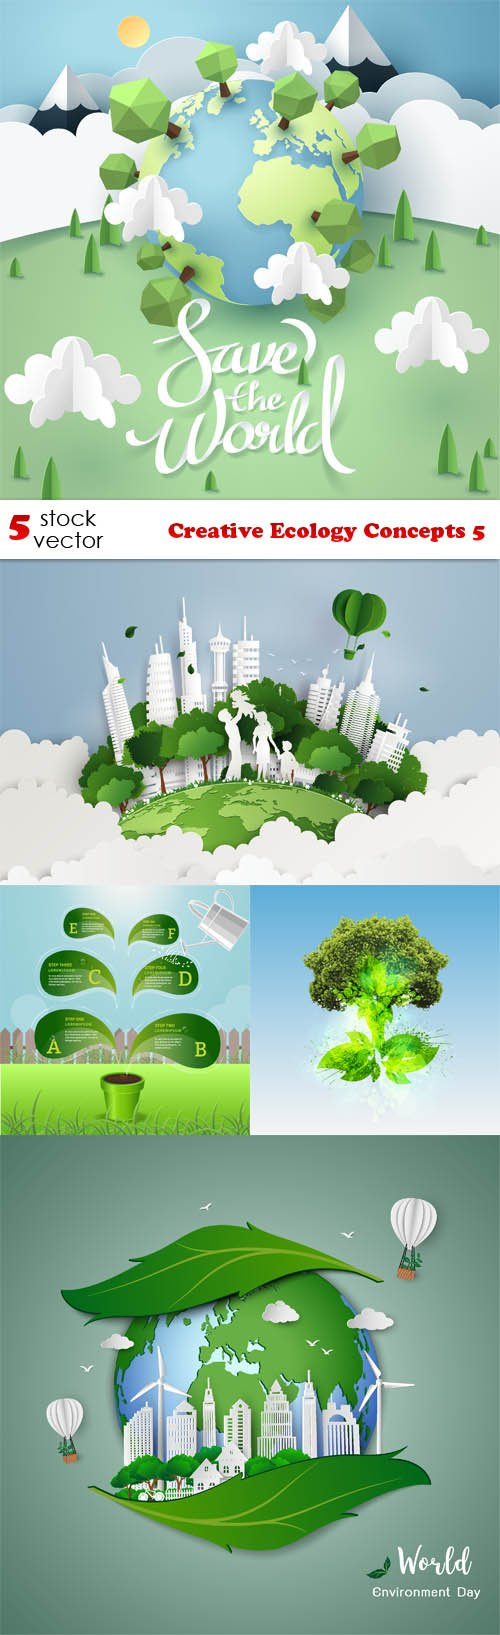 Vectors - Creative Ecology Concepts 5